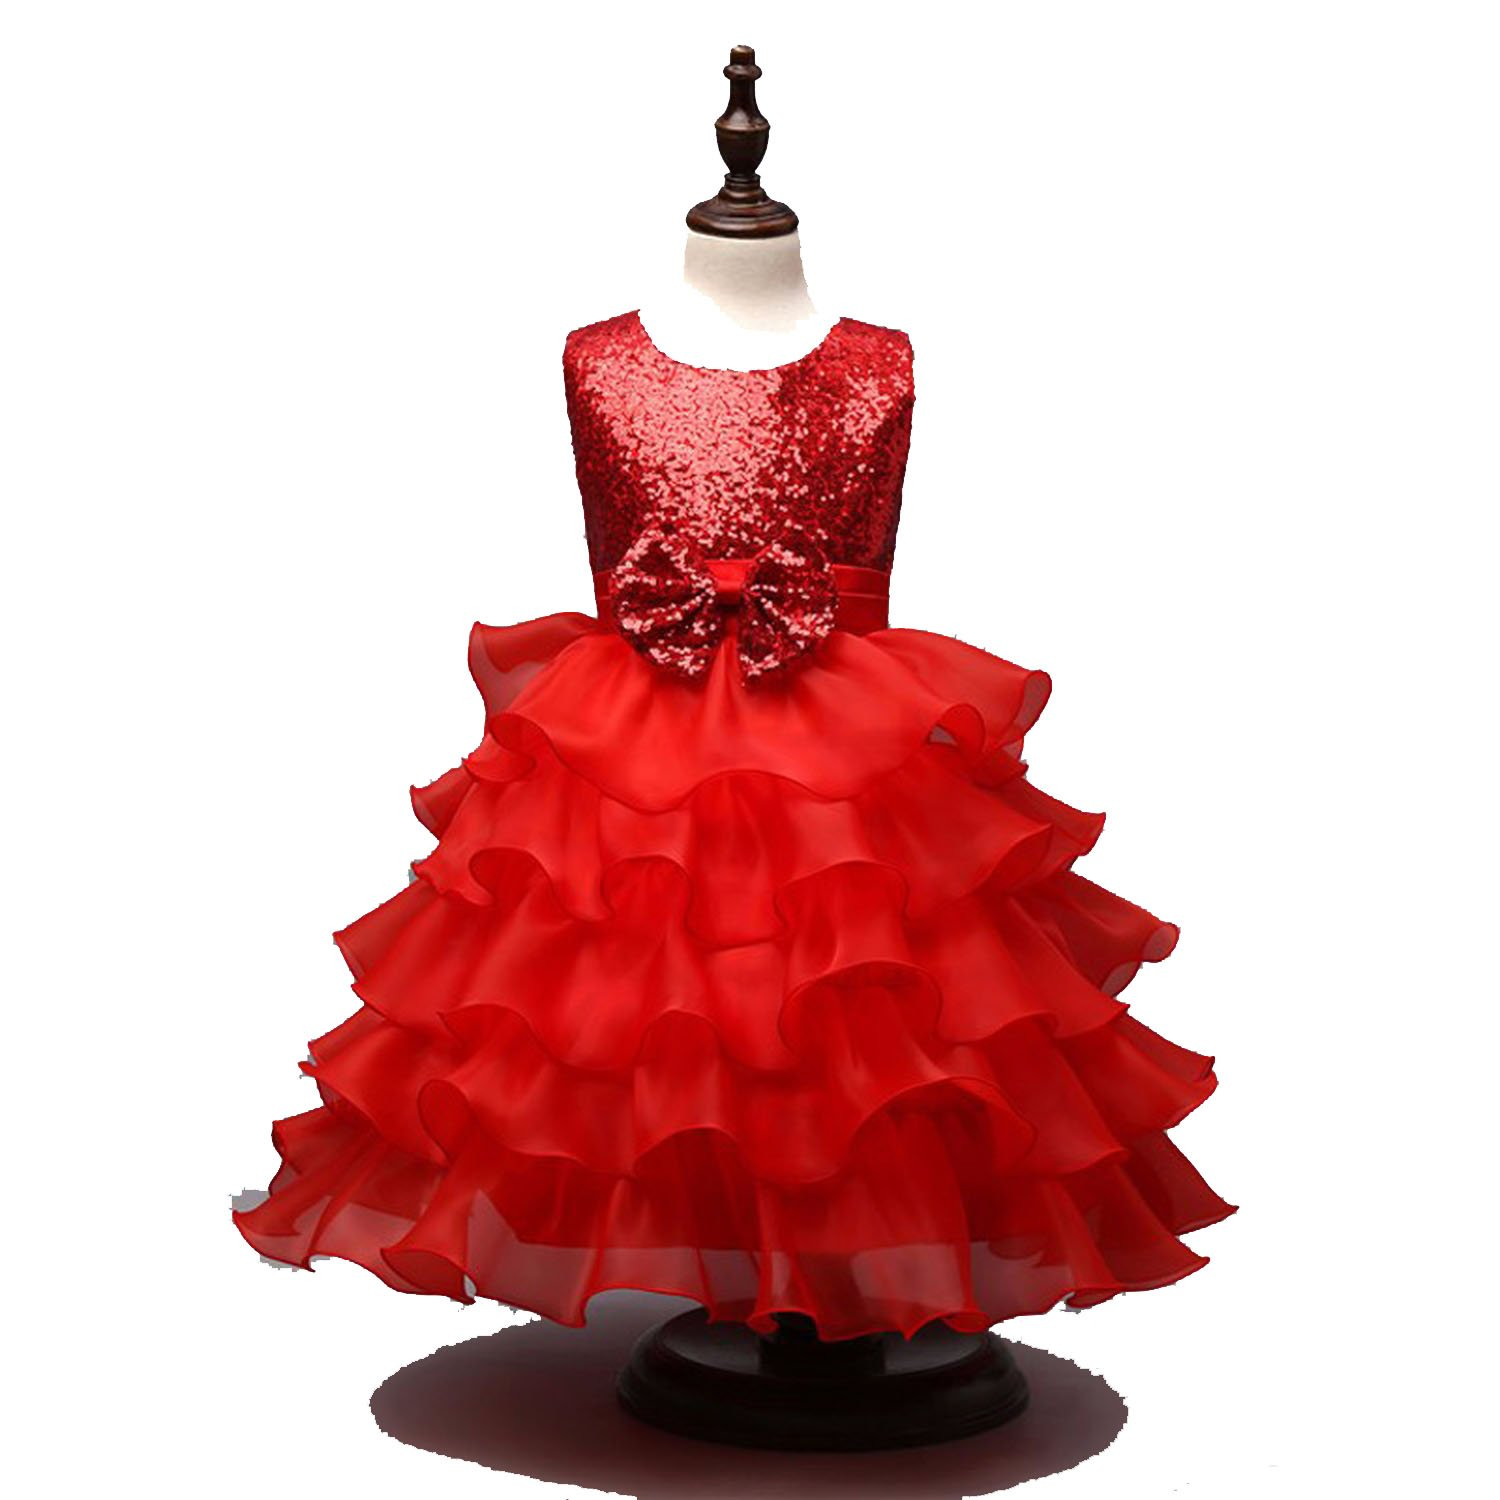 Toping Fine girl dress Holy Communion Dresses for Girl Children Sequined Decoration Daughter Gowns Tiered Flower Girl Dresses,red,Child-6